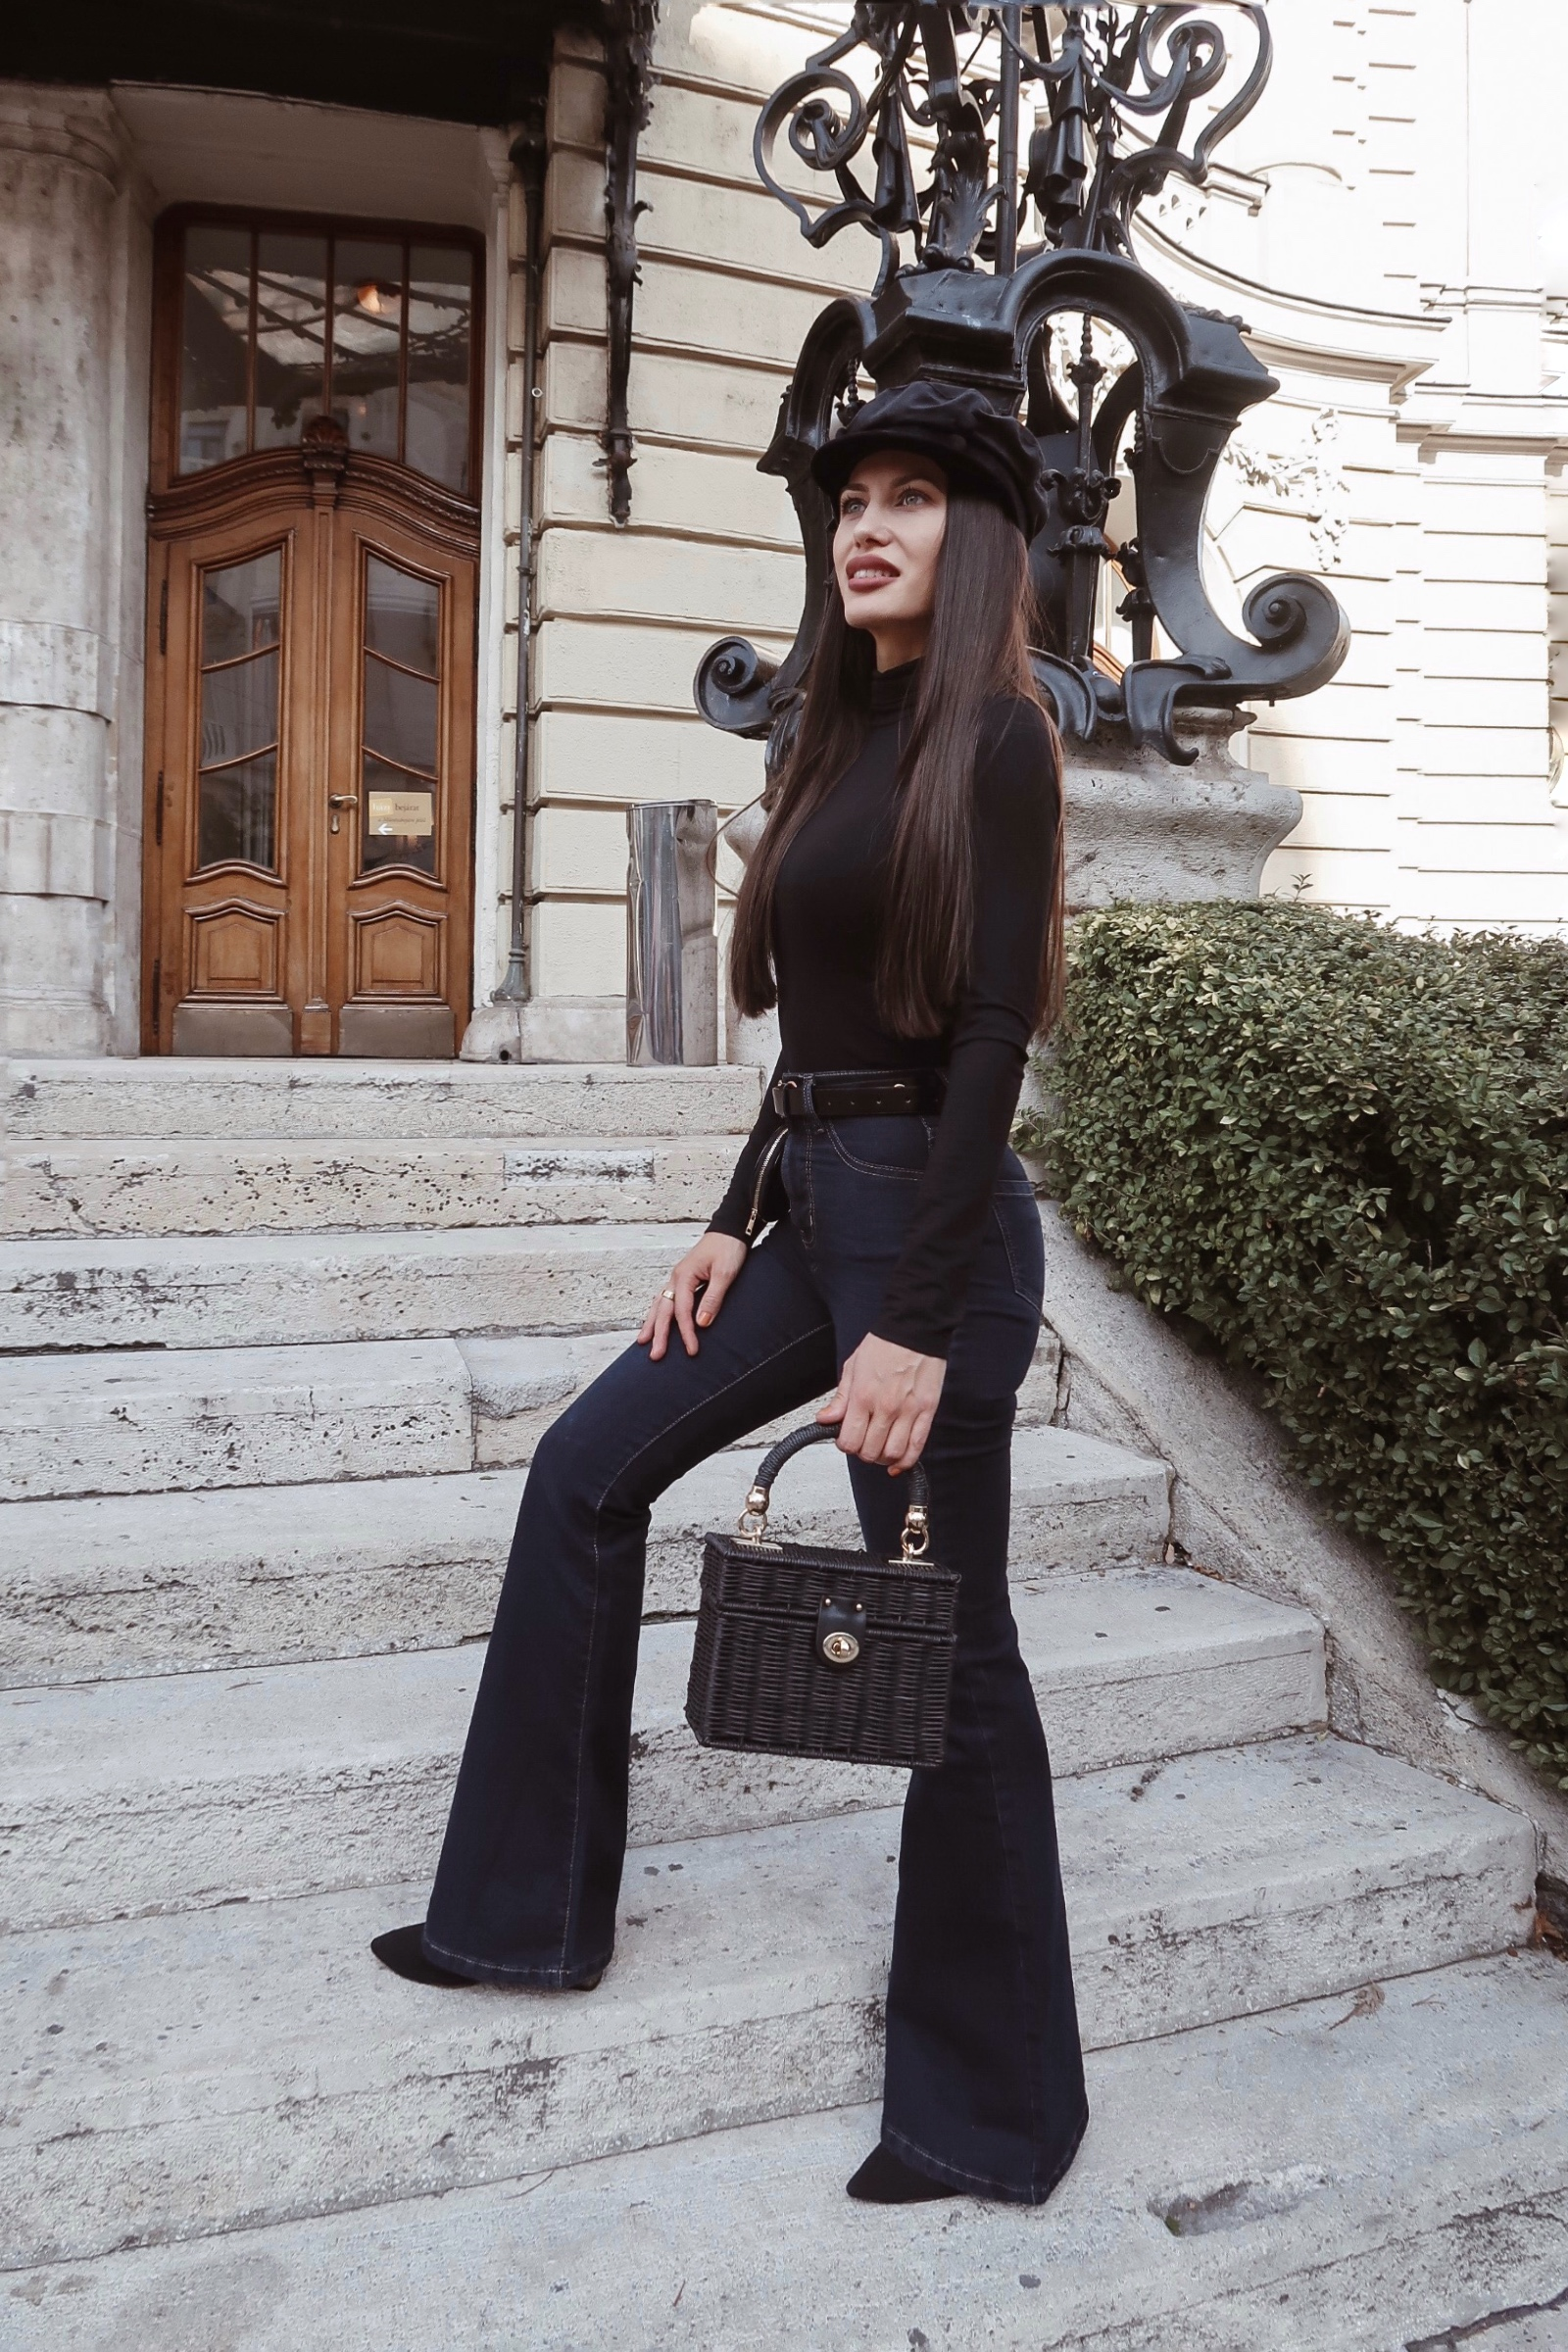 Back in style: Flare jeans